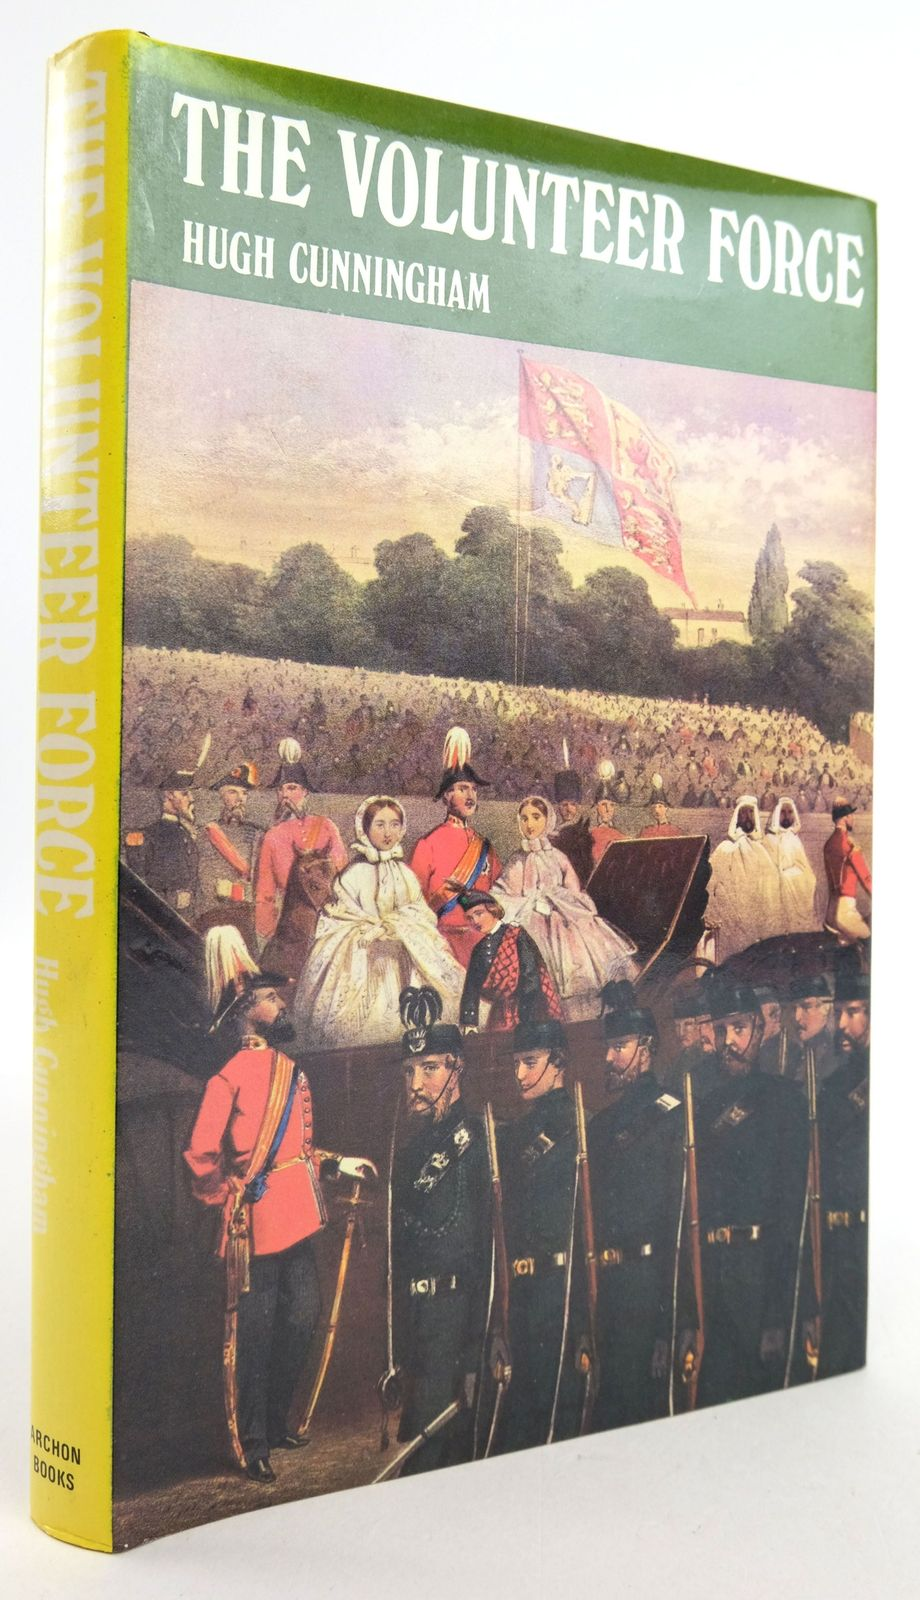 Photo of THE VOLUNTEER FORCE: A SOCIAL AND POLITICAL HISTORY 1859-1908 written by Cunningham, Hugh published by Archon Books (STOCK CODE: 1819773)  for sale by Stella & Rose's Books